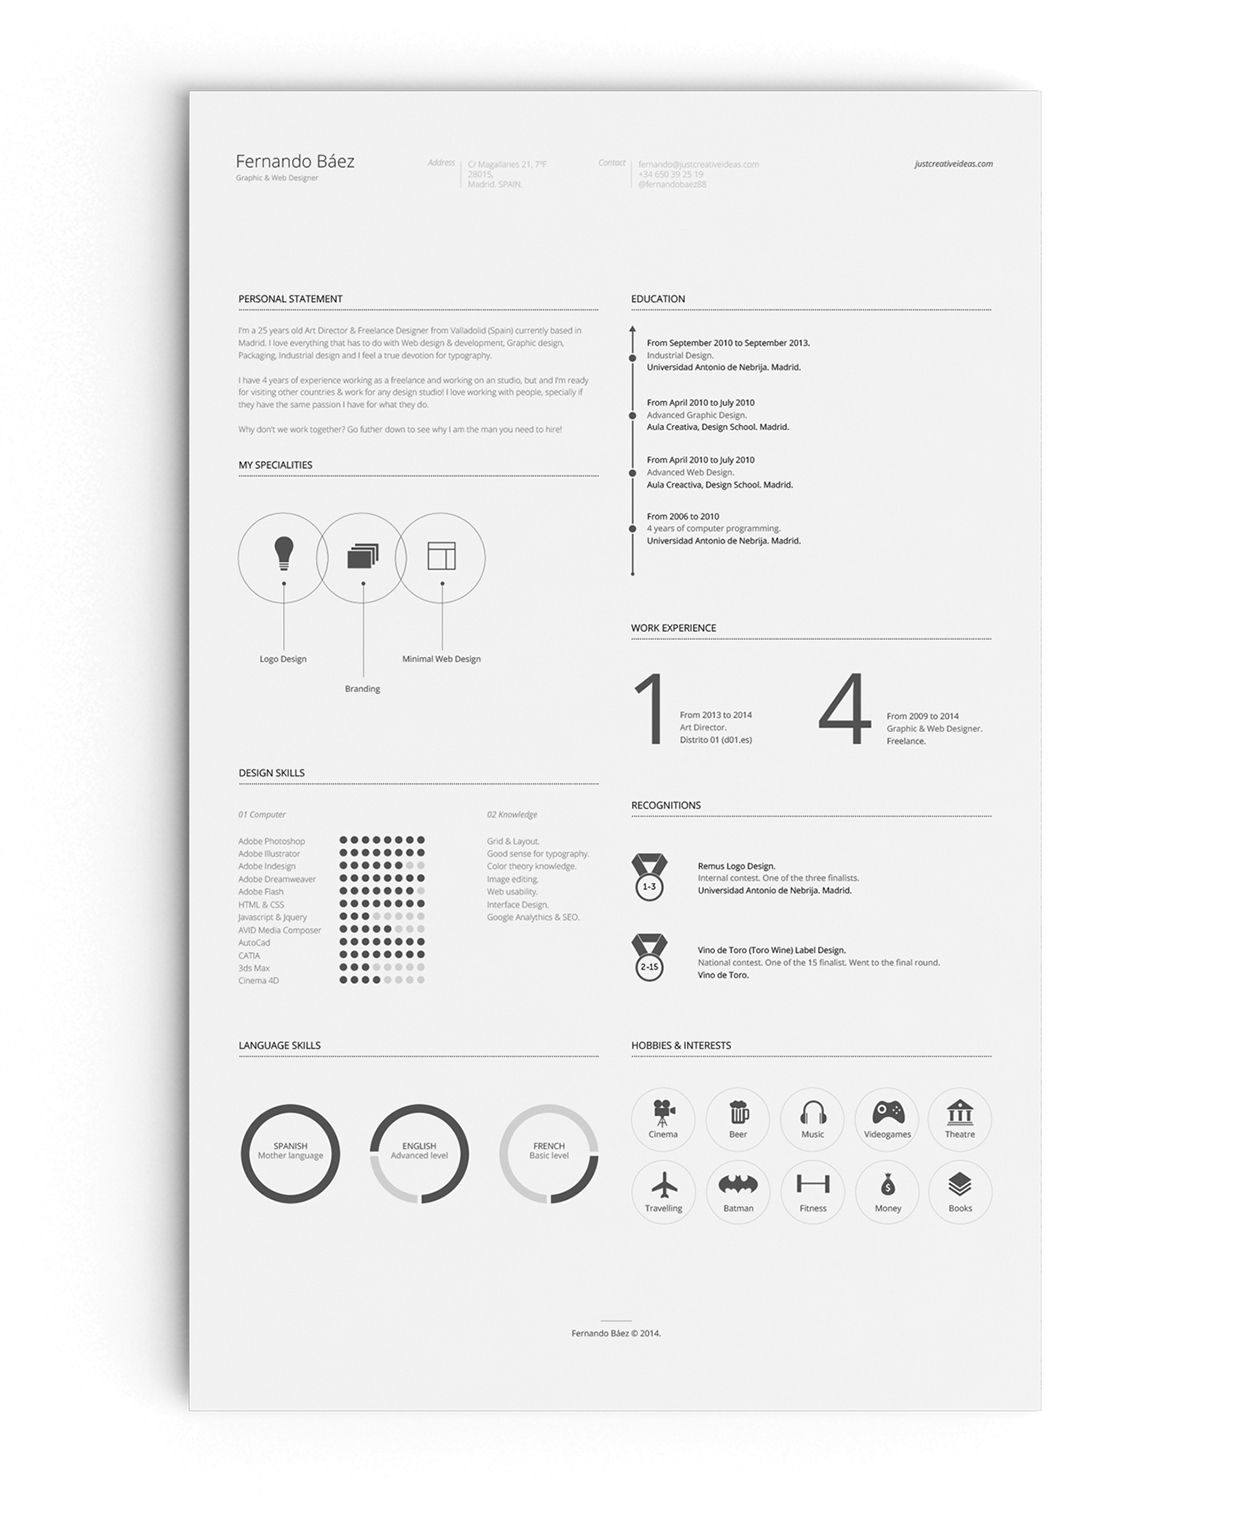 Free resume template ready to download! | Imagen corporativa ...